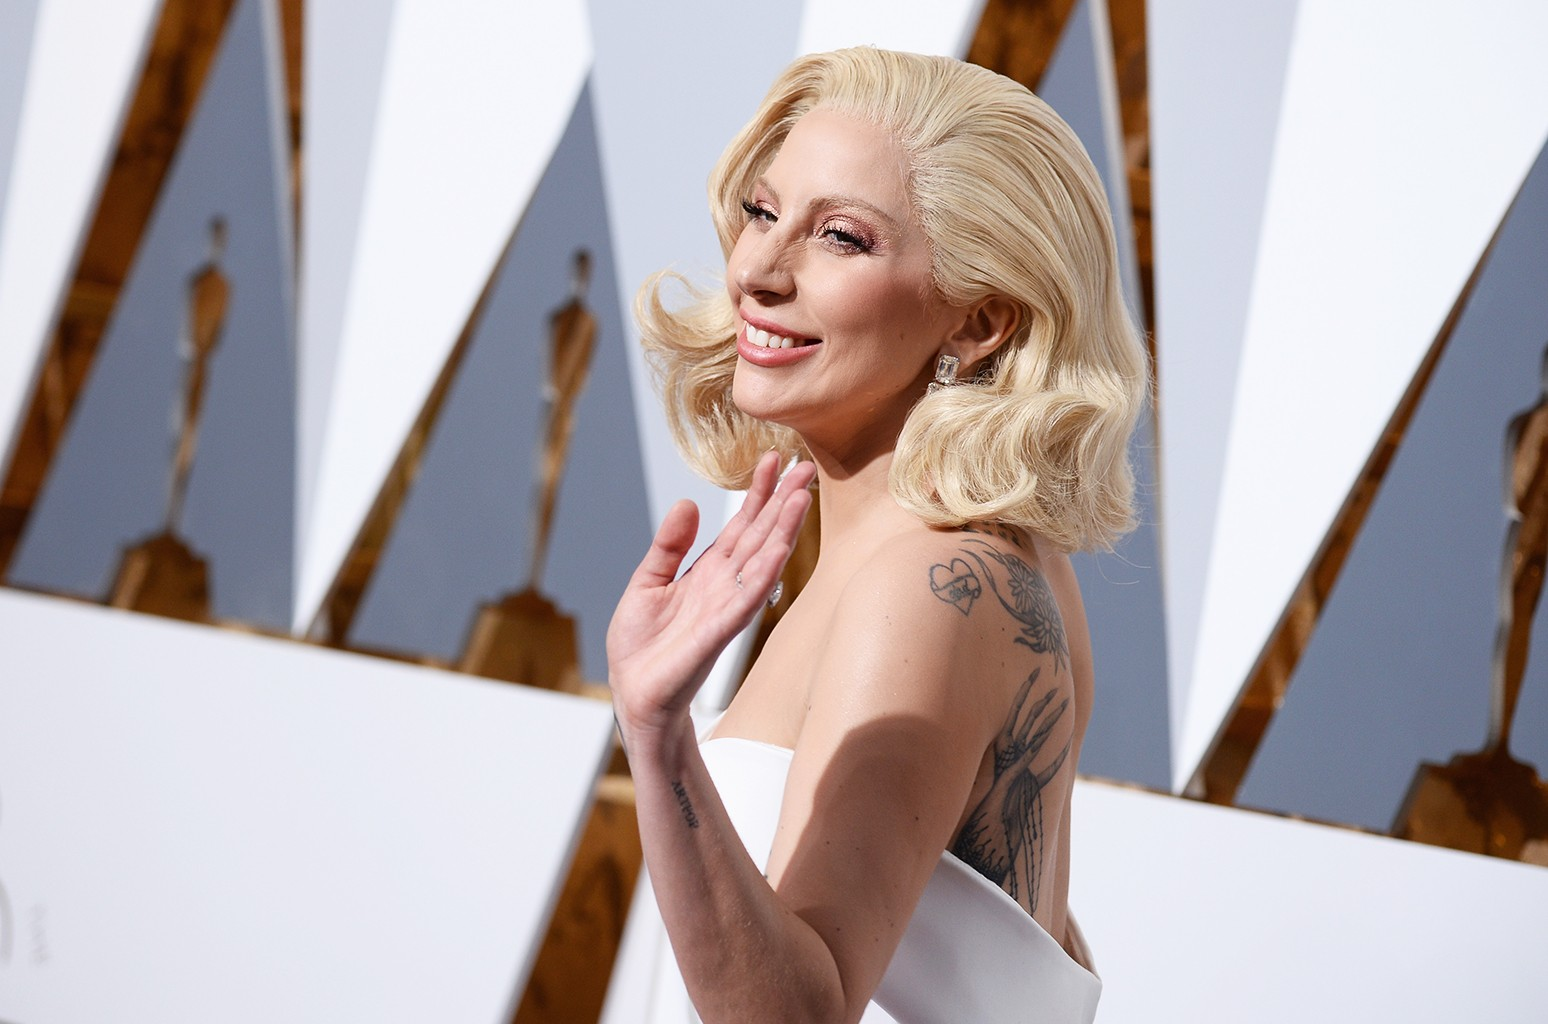 Lady Gaga attends the 2016 Annual Academy Awards